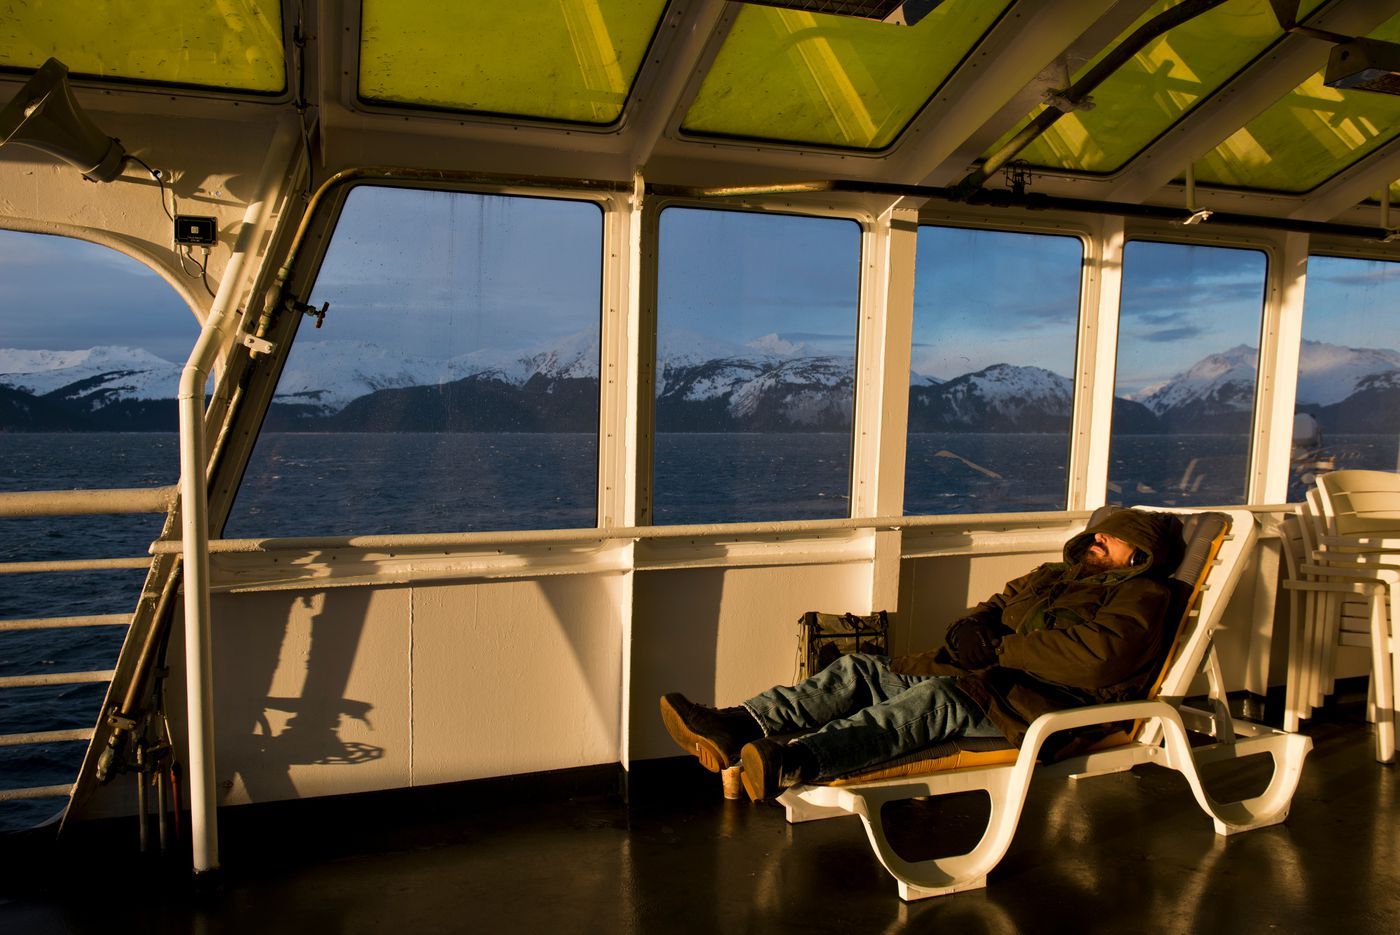 A passenger rests in the solarium of the ferry LeConte on January 22, 2017. (Marc Lester / Alaska Dispatch News)